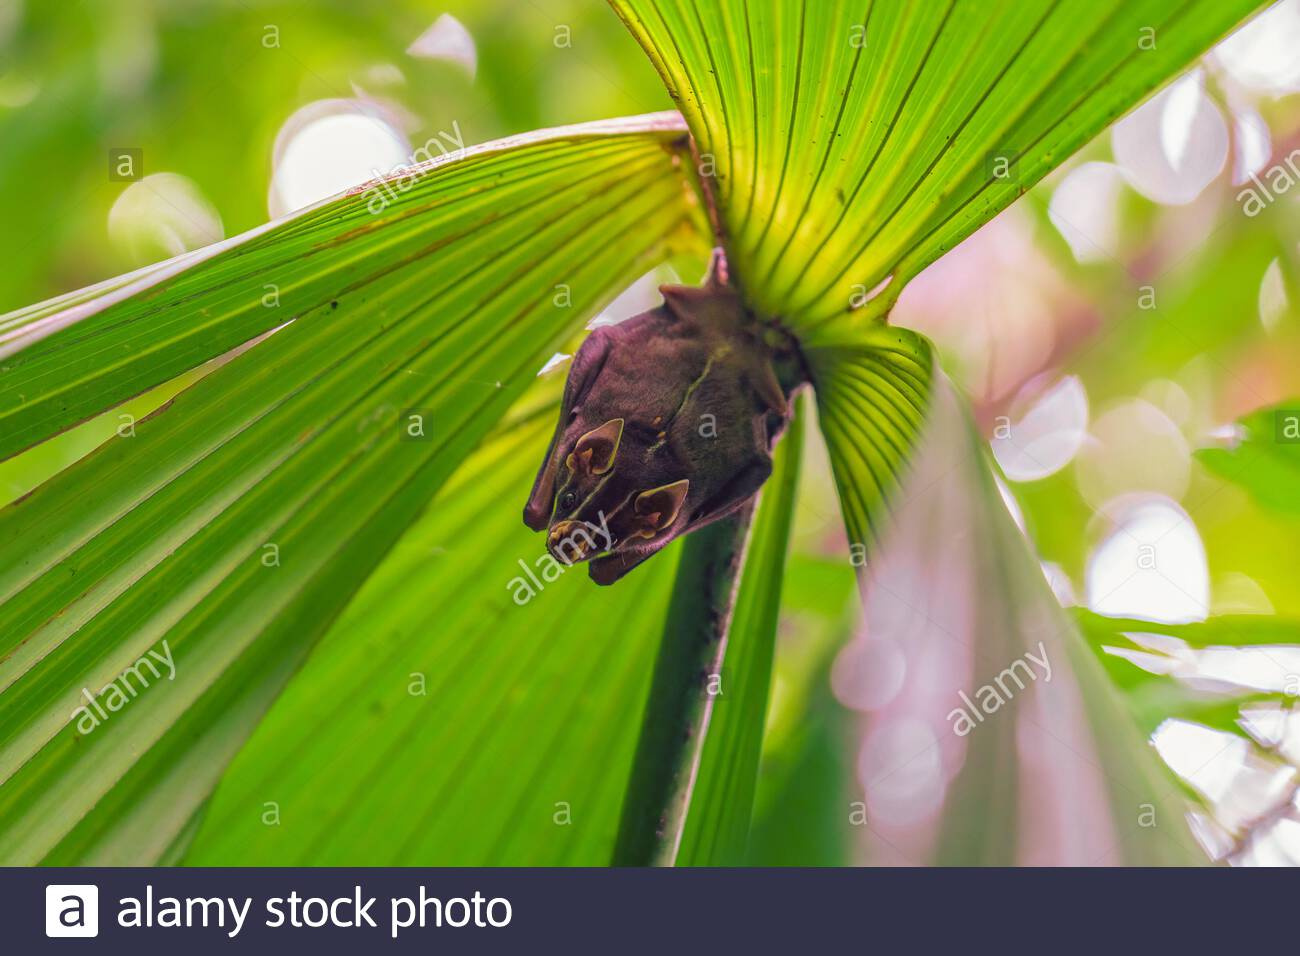 Tent-making Bat roosting in a palm frond, taken in Costa Rica Stock Photo